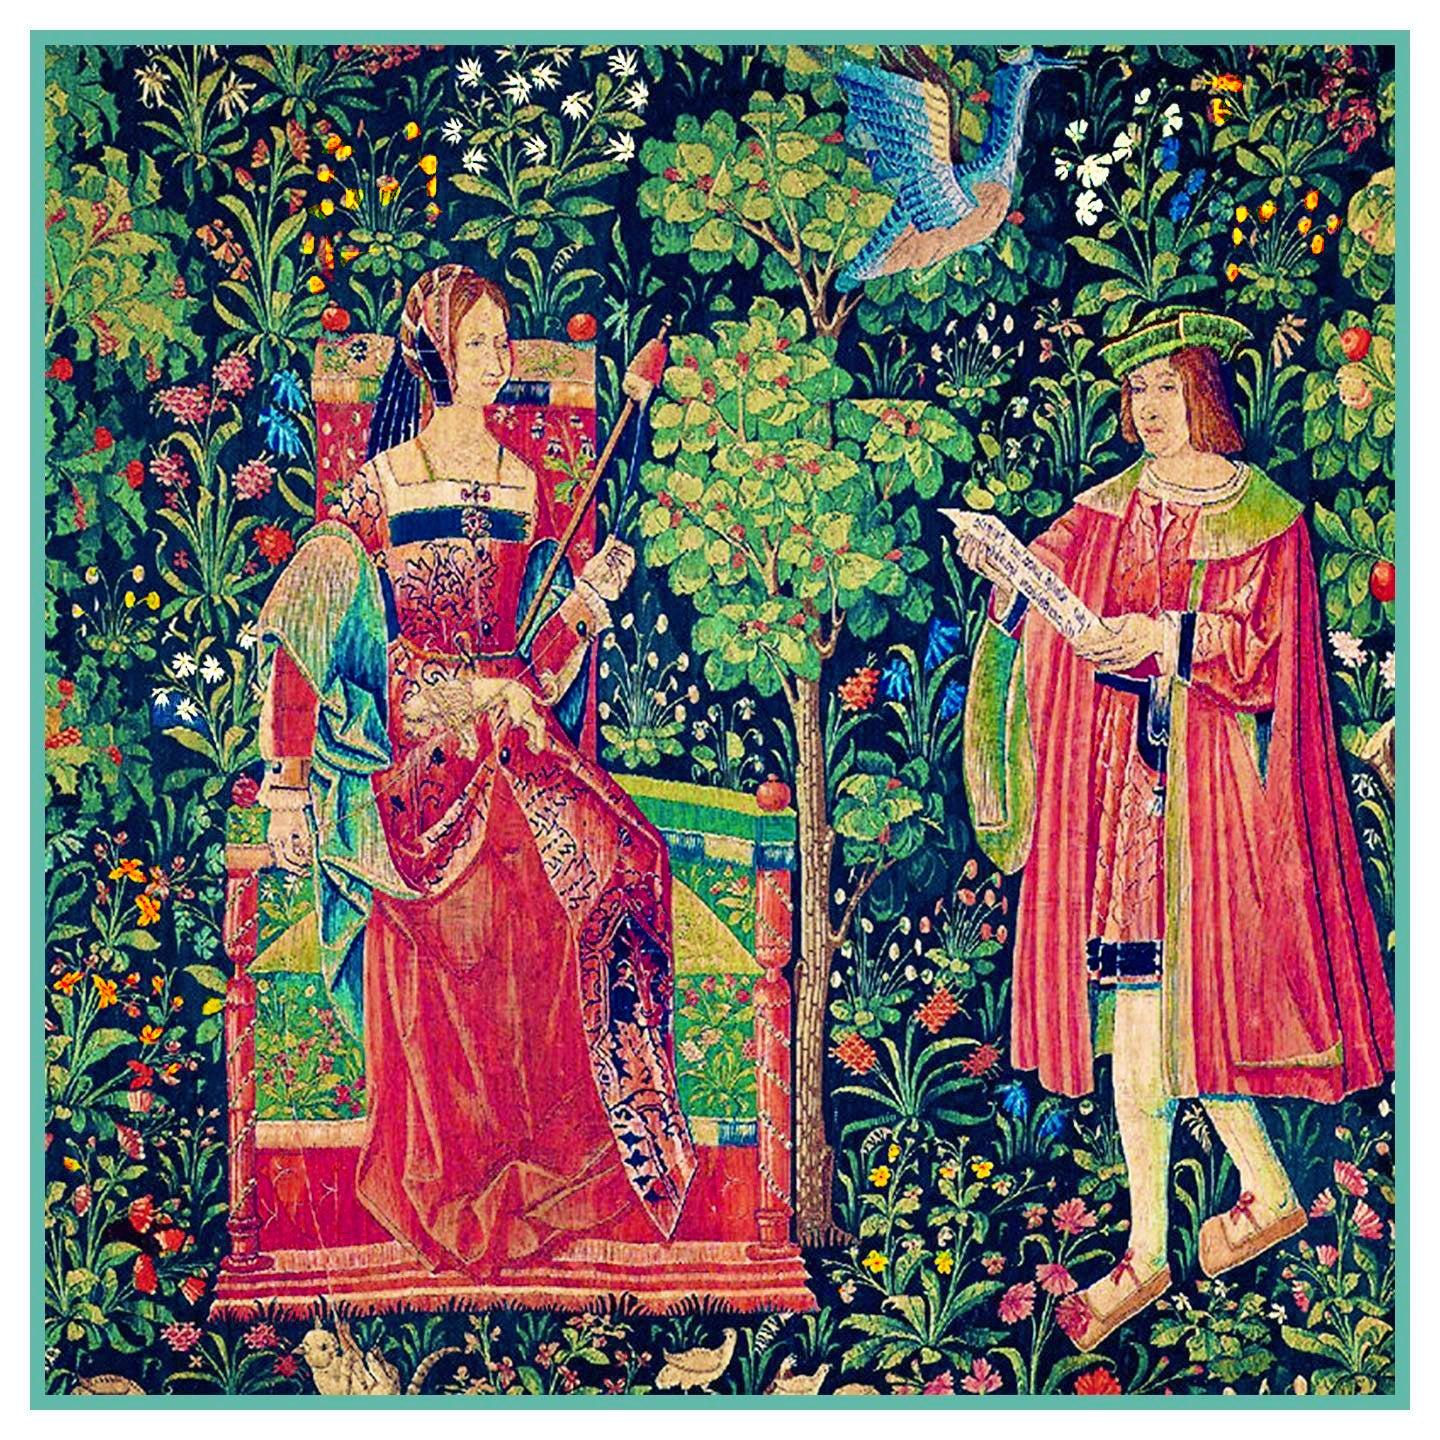 The Lord and Lady From Medieval Tapestry Counted Cross Stitch Pattern